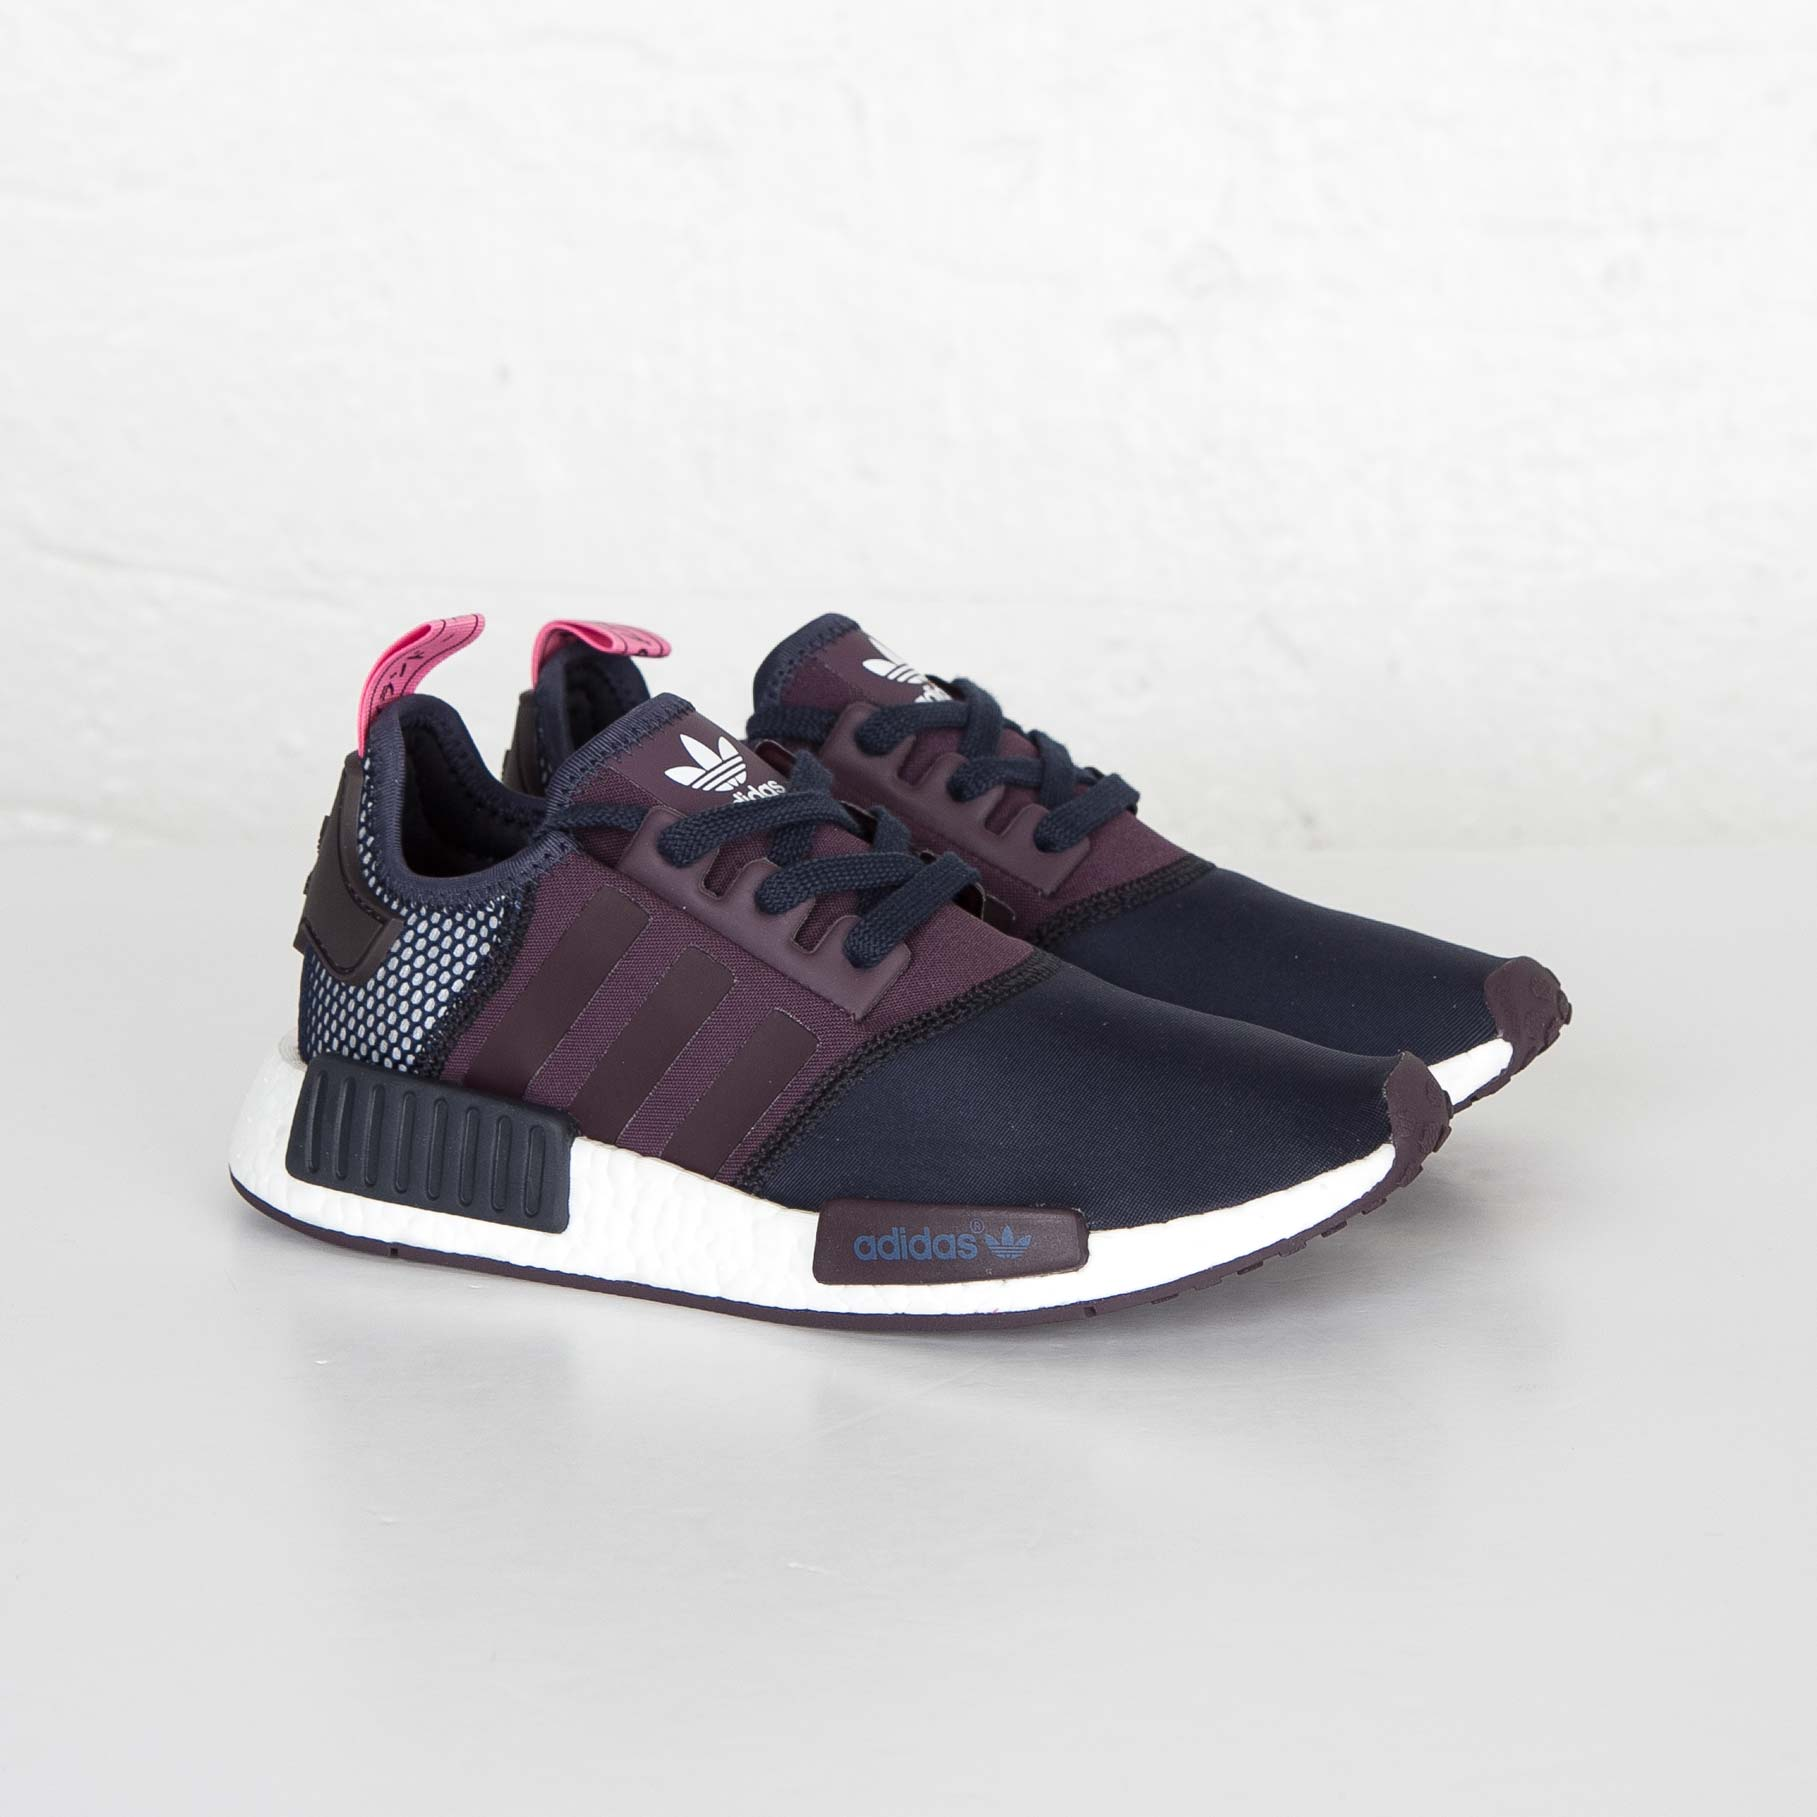 best service b411b b9bd2 Adidas Grand Prix Sneakers Nmd R1 Inv X Nhbd Neighborhood ...